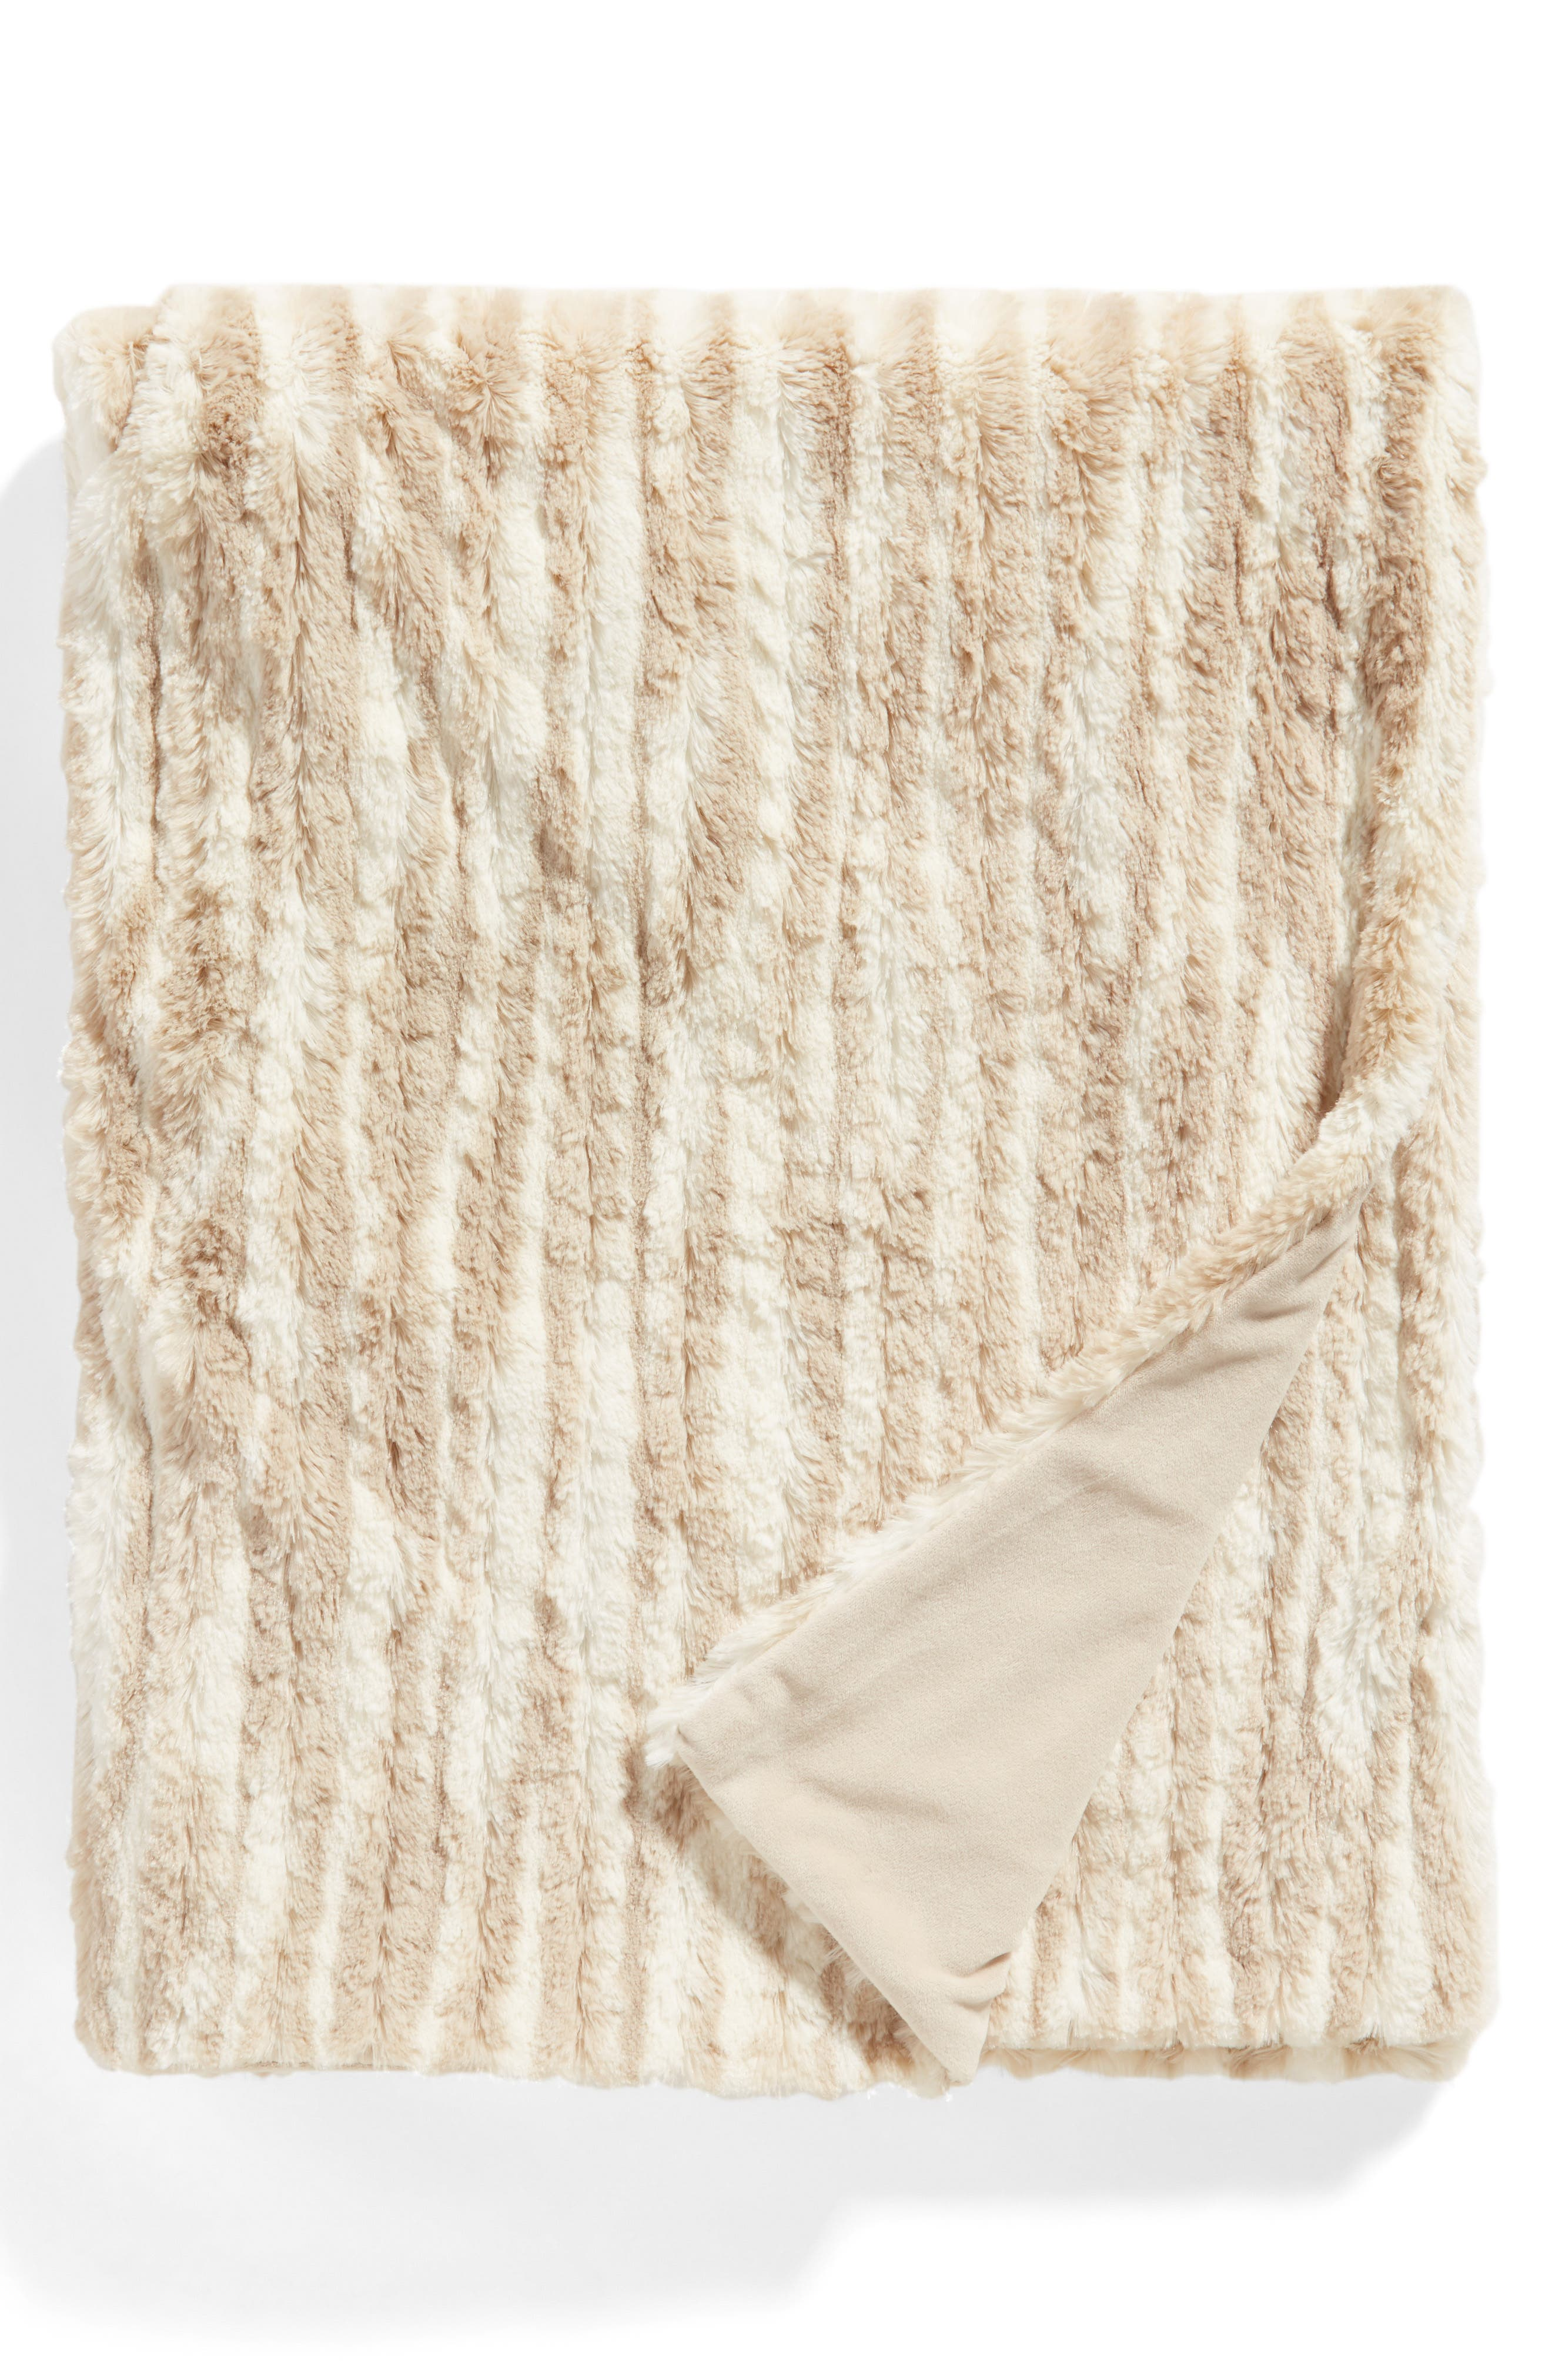 NORDSTROM AT HOME, Soft Ribbed Plush Throw, Main thumbnail 1, color, BEIGE OATMEAL PRINT